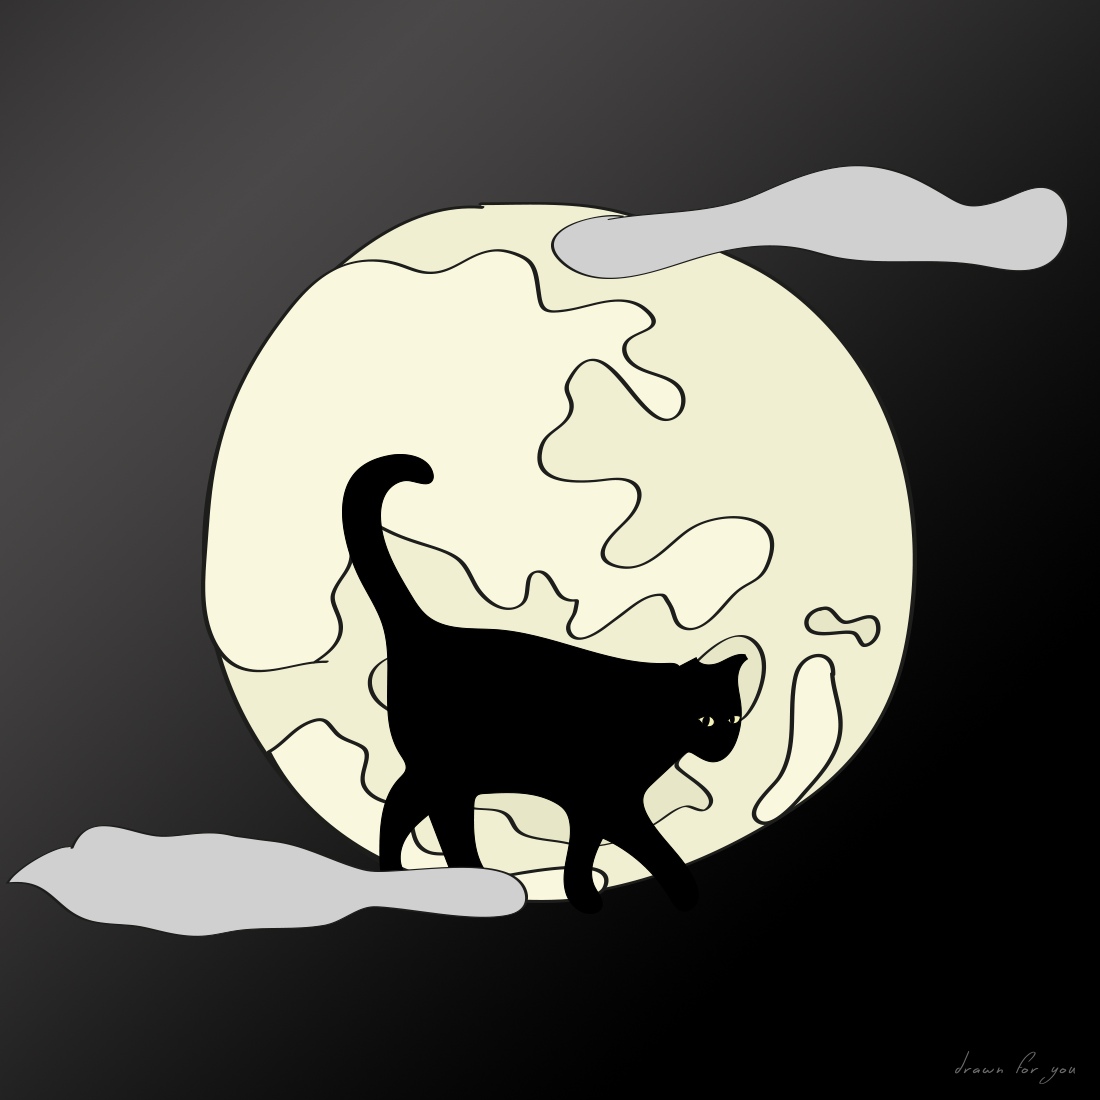 Friday the 13th and full moon, September 13, 2019